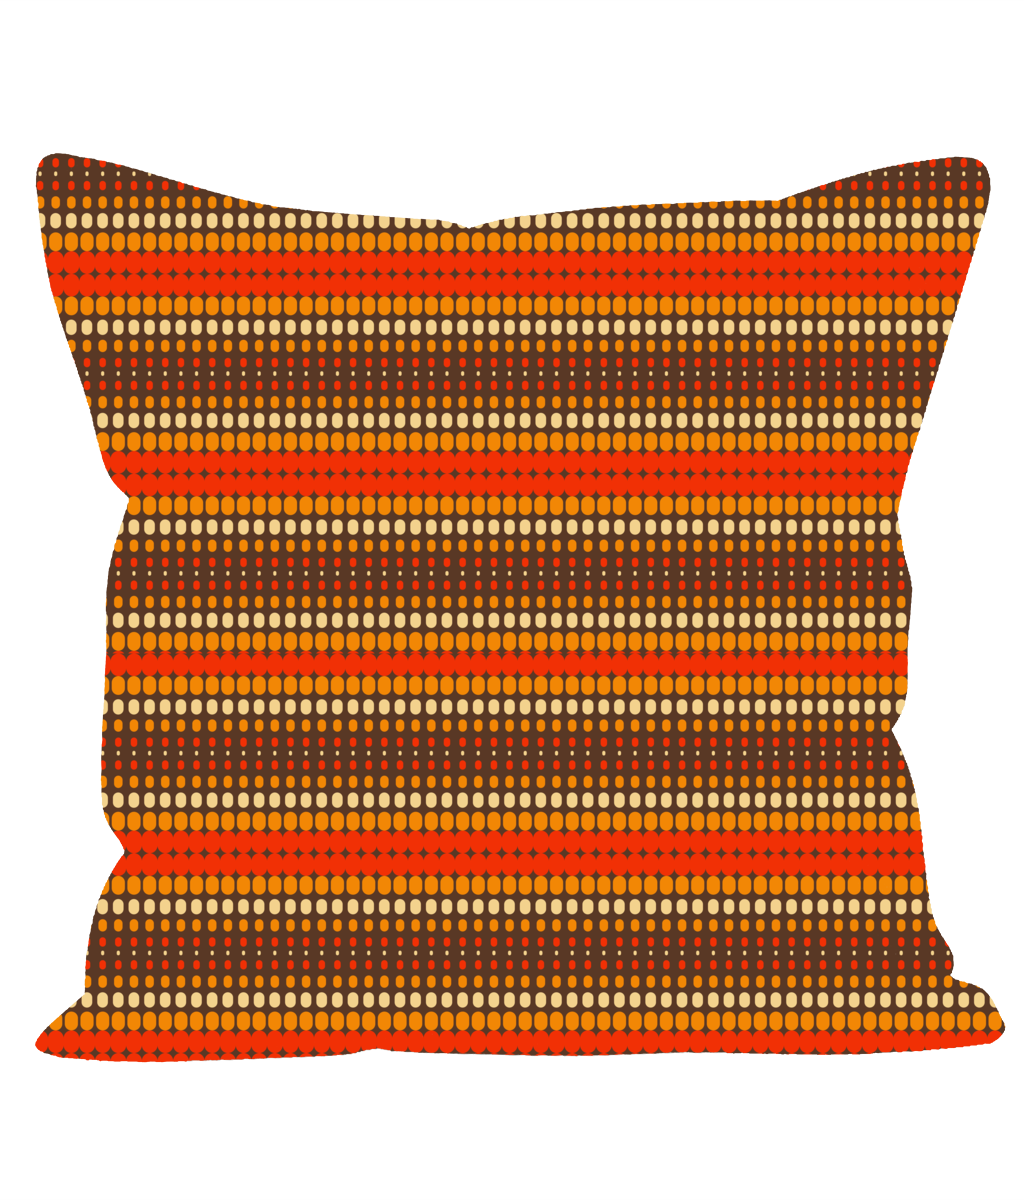 Retro Vintage Throw Cushion with Brown and Orange Stripes. 1960's 1970's Style.